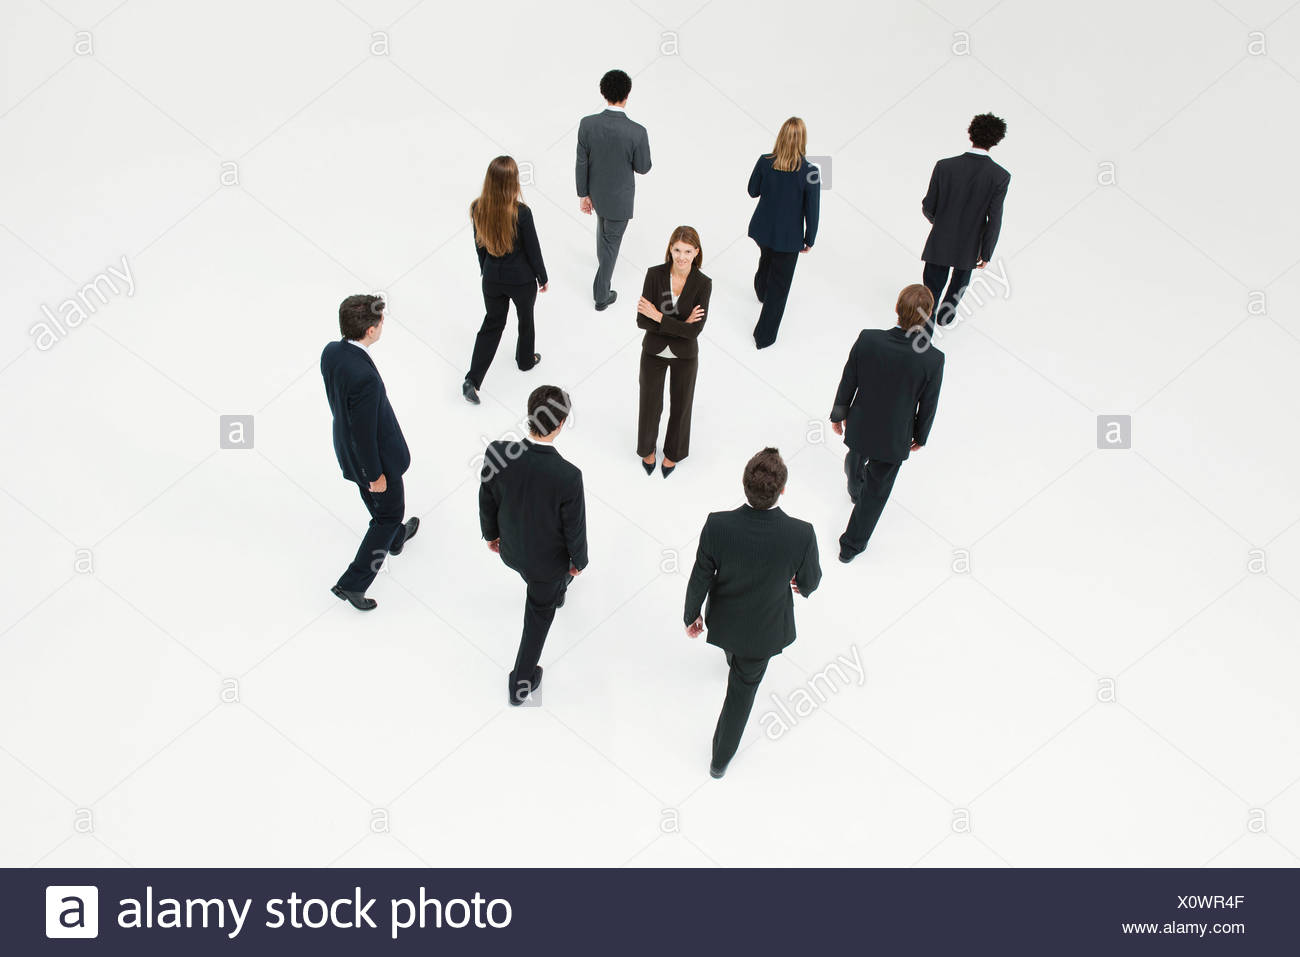 Businesswoman standing in midst of other anonymously dressed business professionals - Stock Image